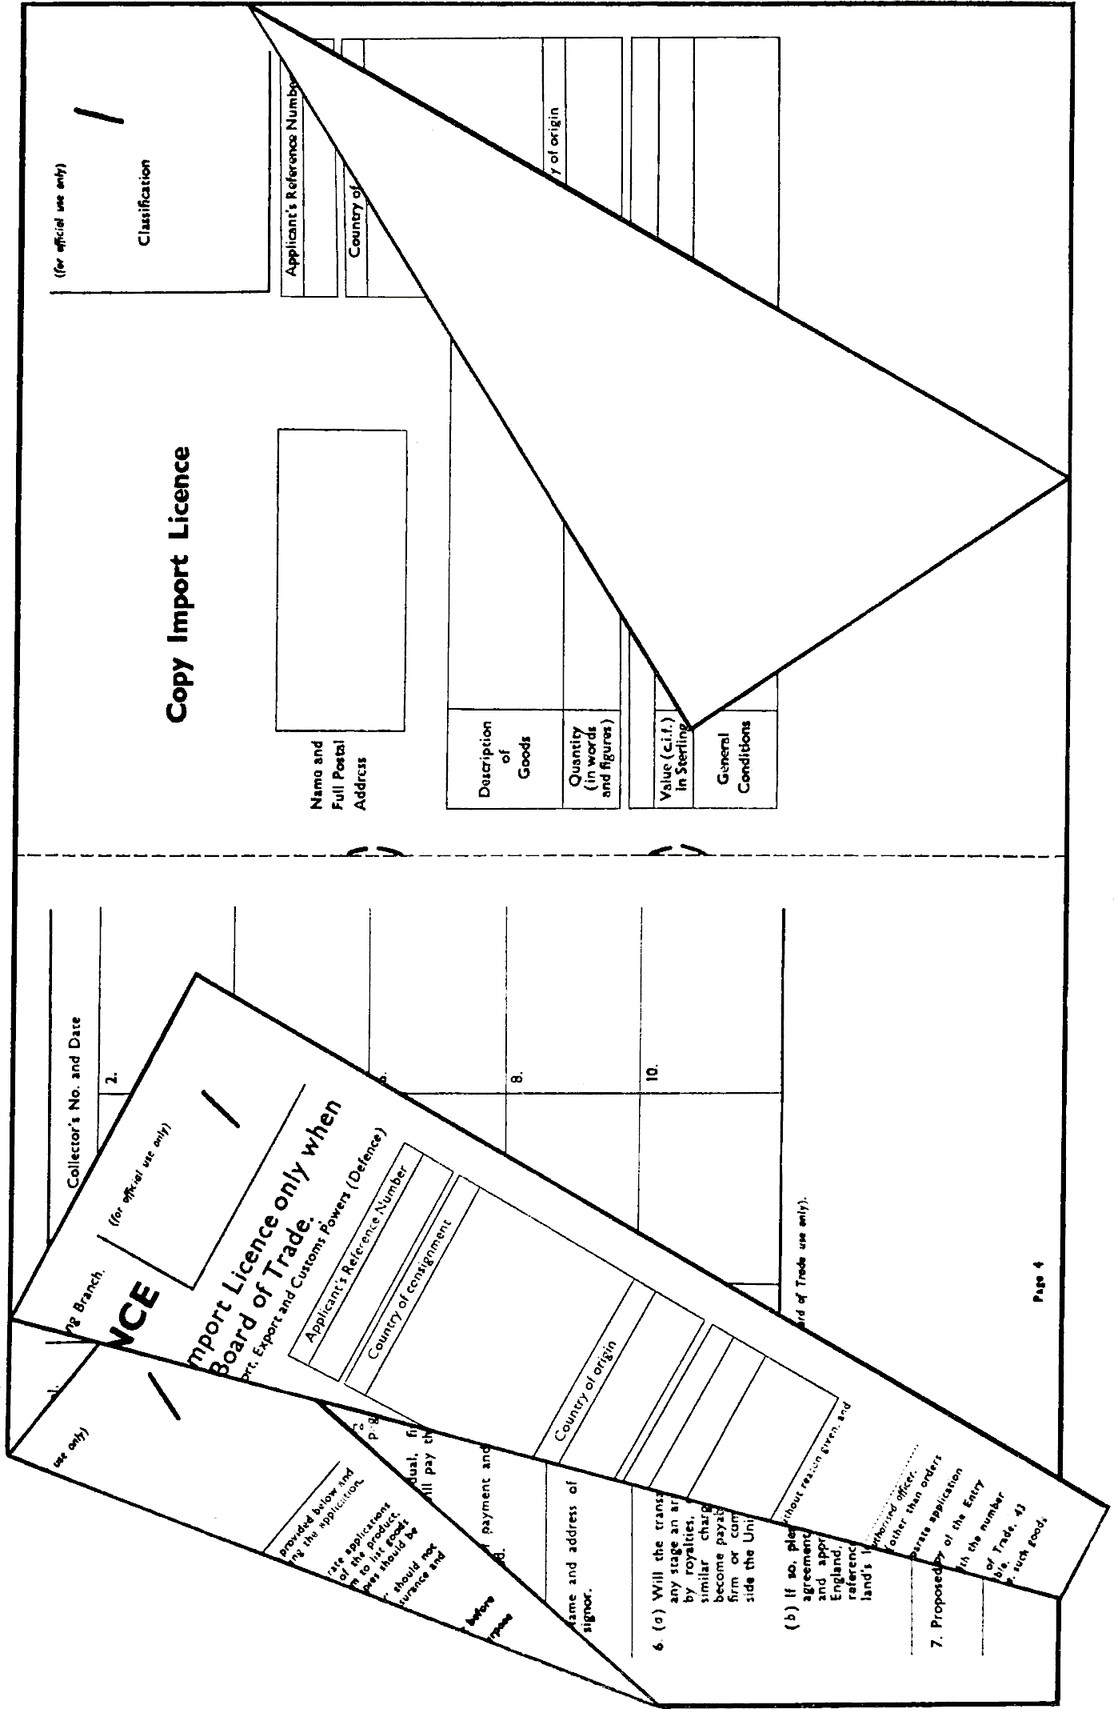 A form folded, perforated and stapled to facilitate registration of entries on copies serving as an application, an import licence and two copies of the licence produced with carbon paper